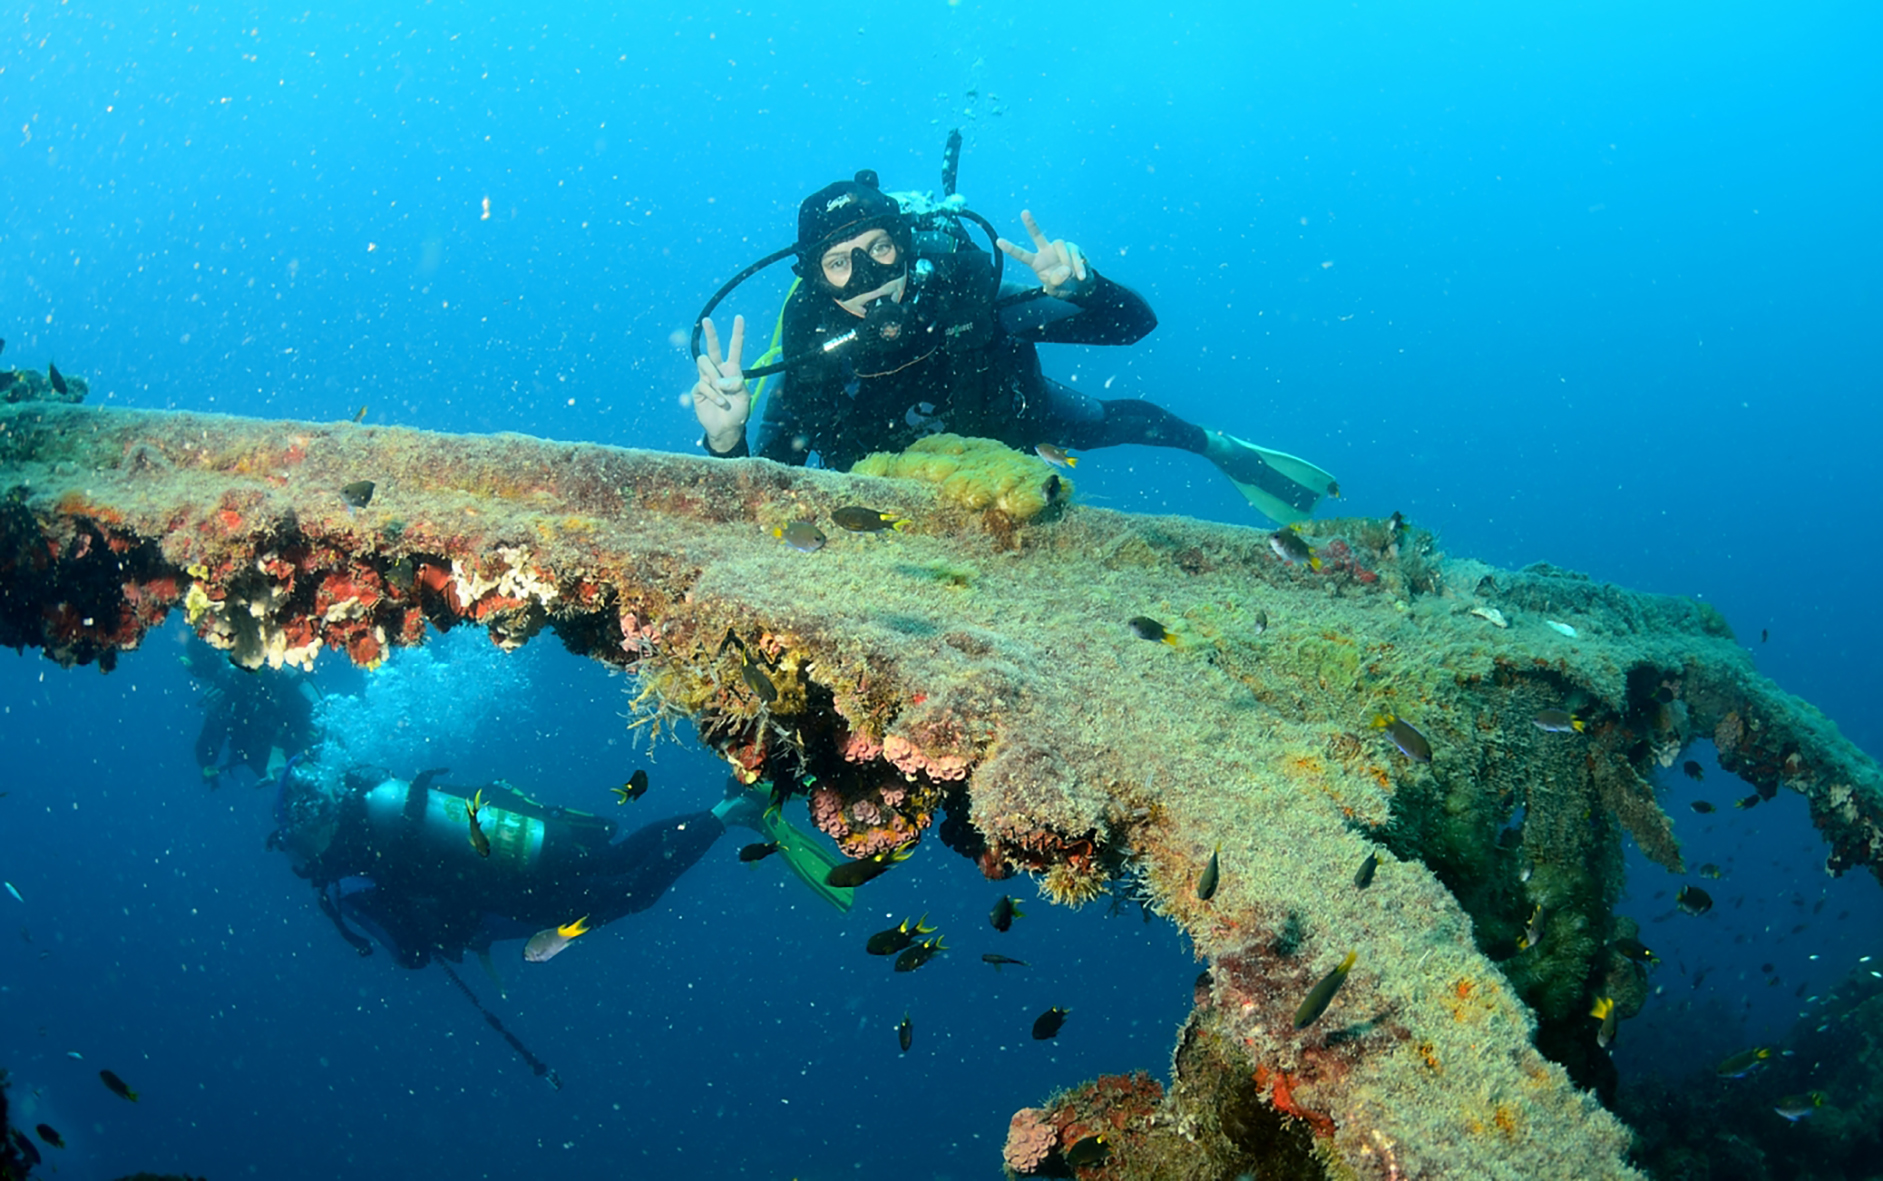 Exploring the Yongala shipwreck with Adrenalin Dive out of Townsville